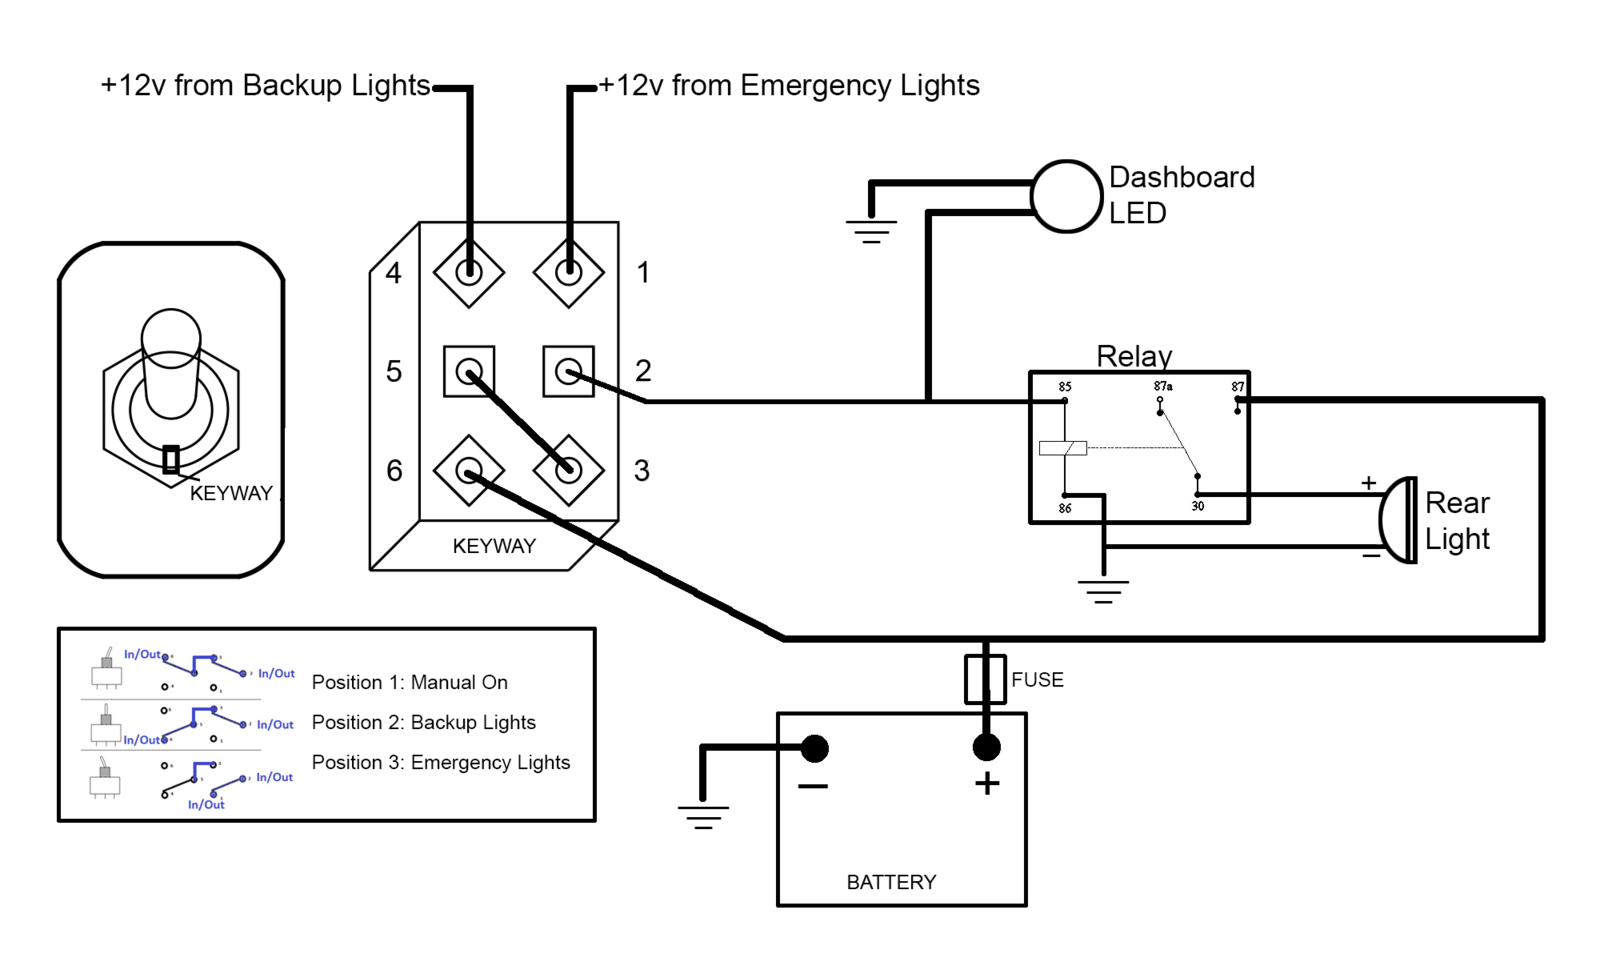 Need Help with Circuit for Tying Rear-Facing Amber Light